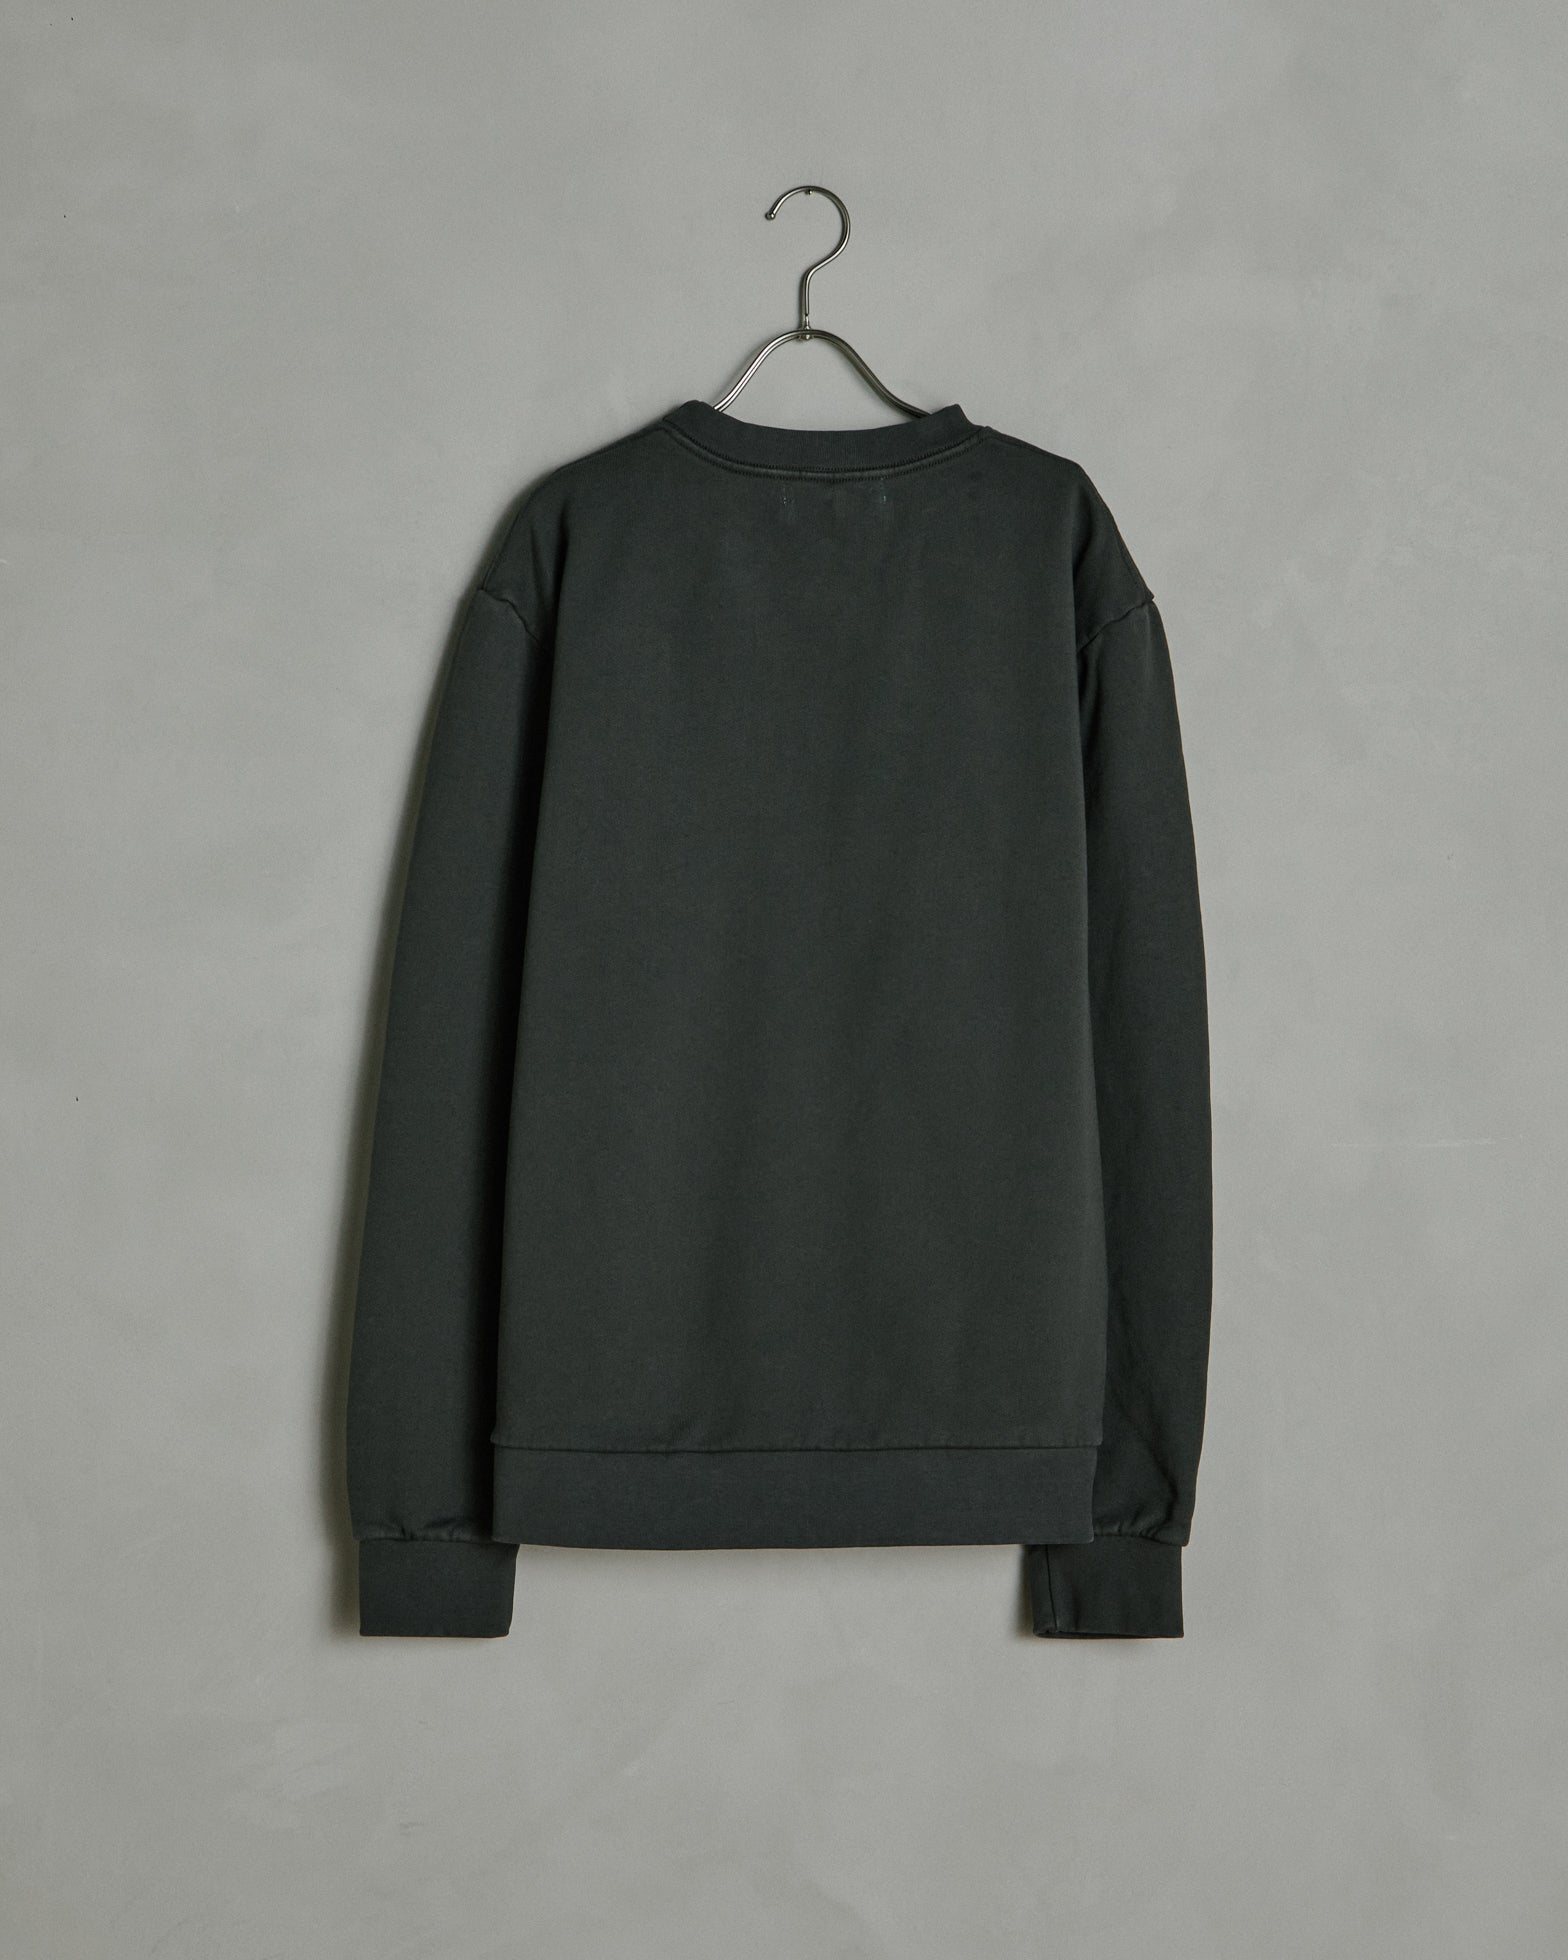 Albers Crew Neck Sweatshirt in Olive Drab